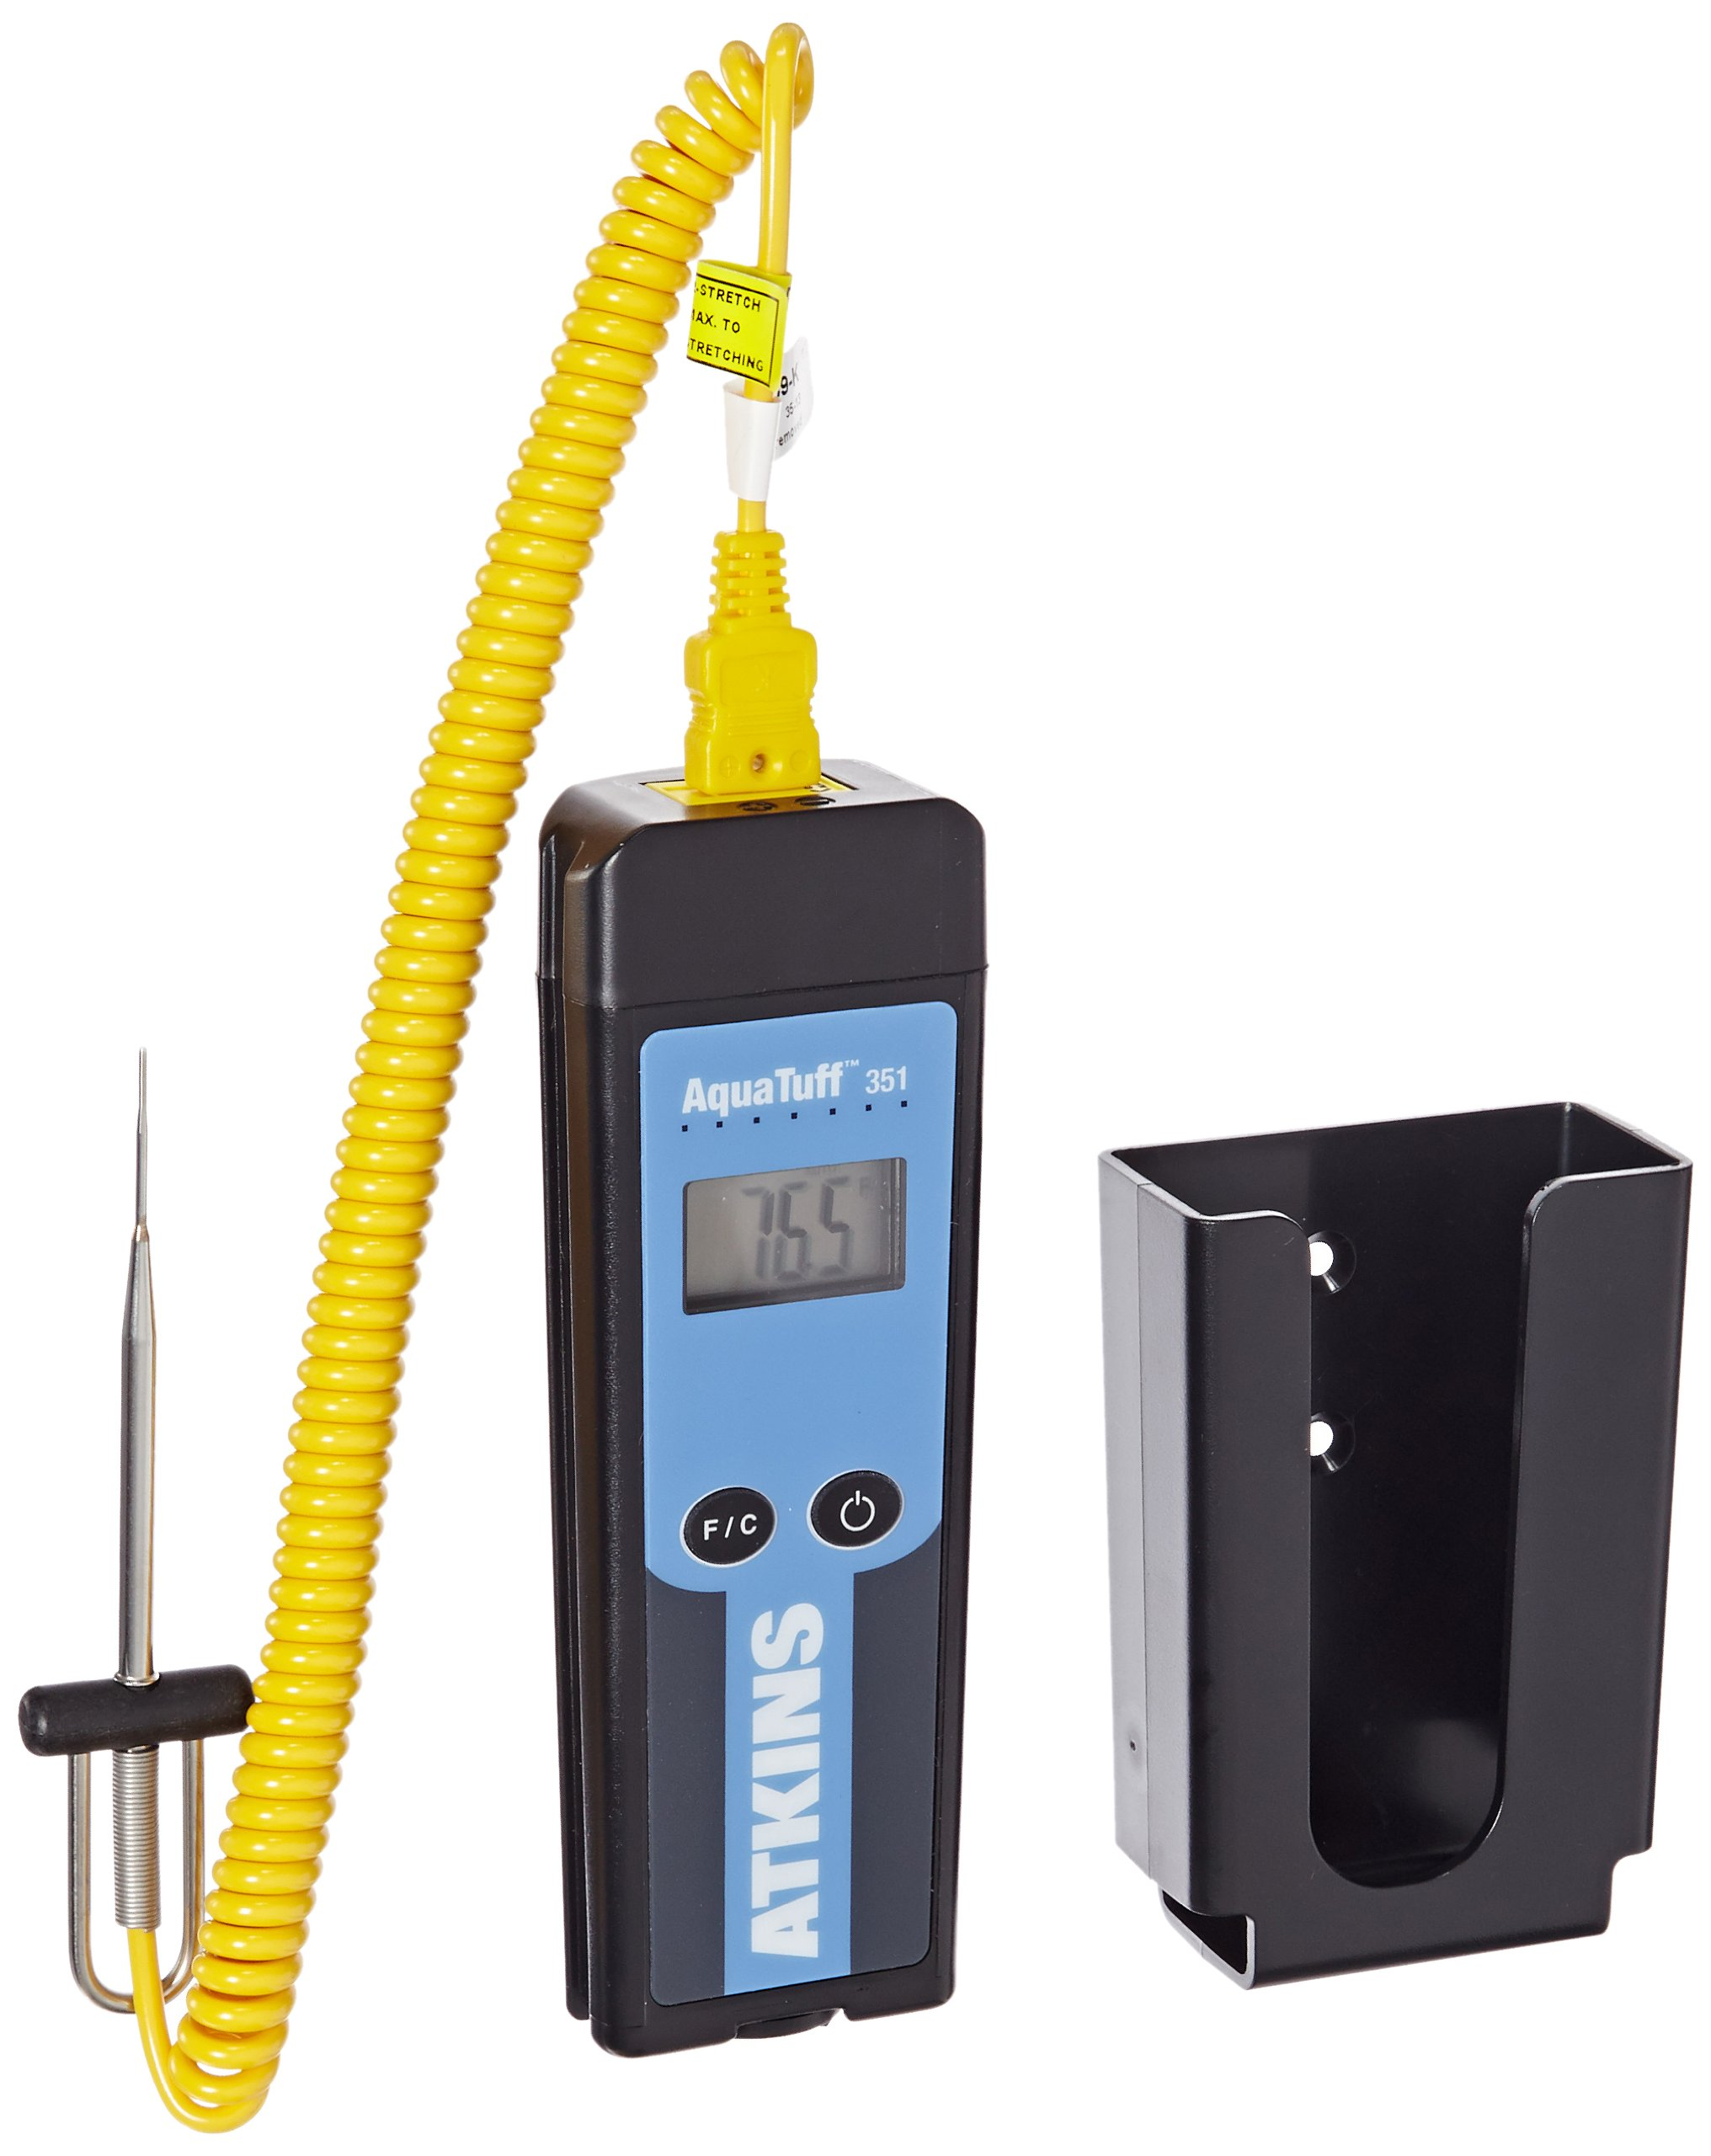 Cooper-Atkins 94003-K AquaTuff Type K Thermocouple with Probes and Bracket